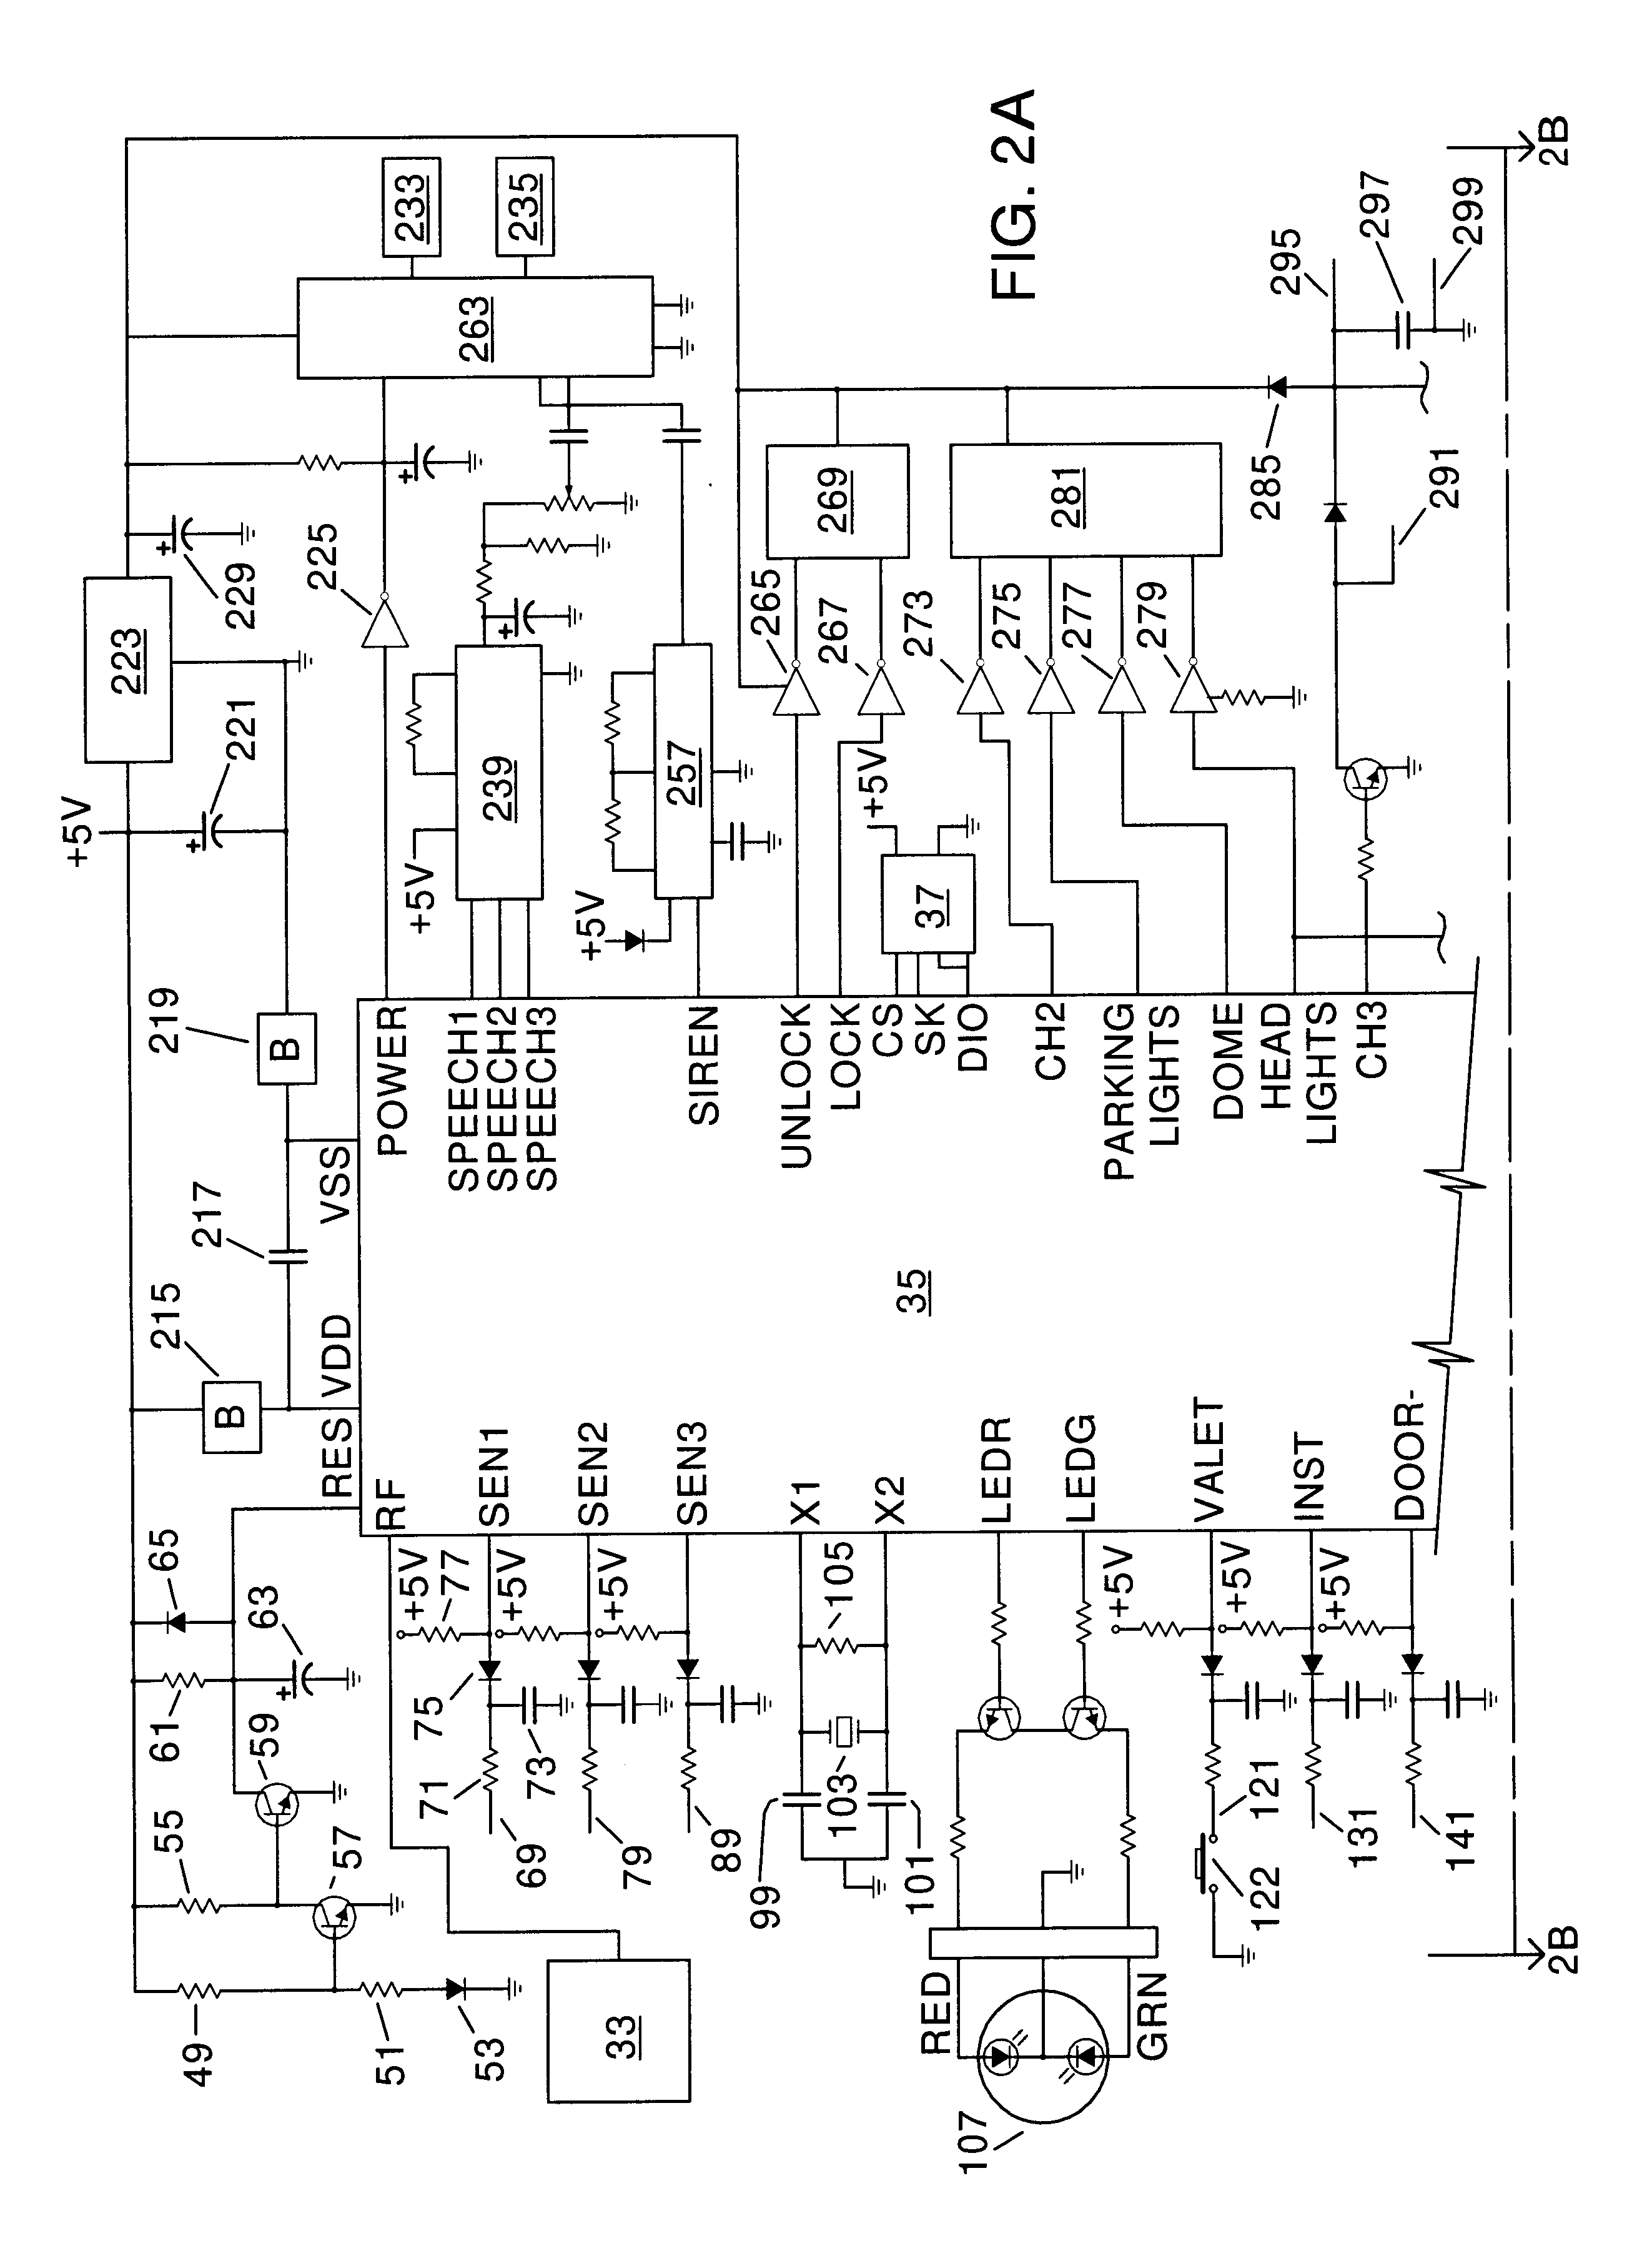 Valet Remote Starter Wiring Diagram - Wiring Diagram And Engine ...